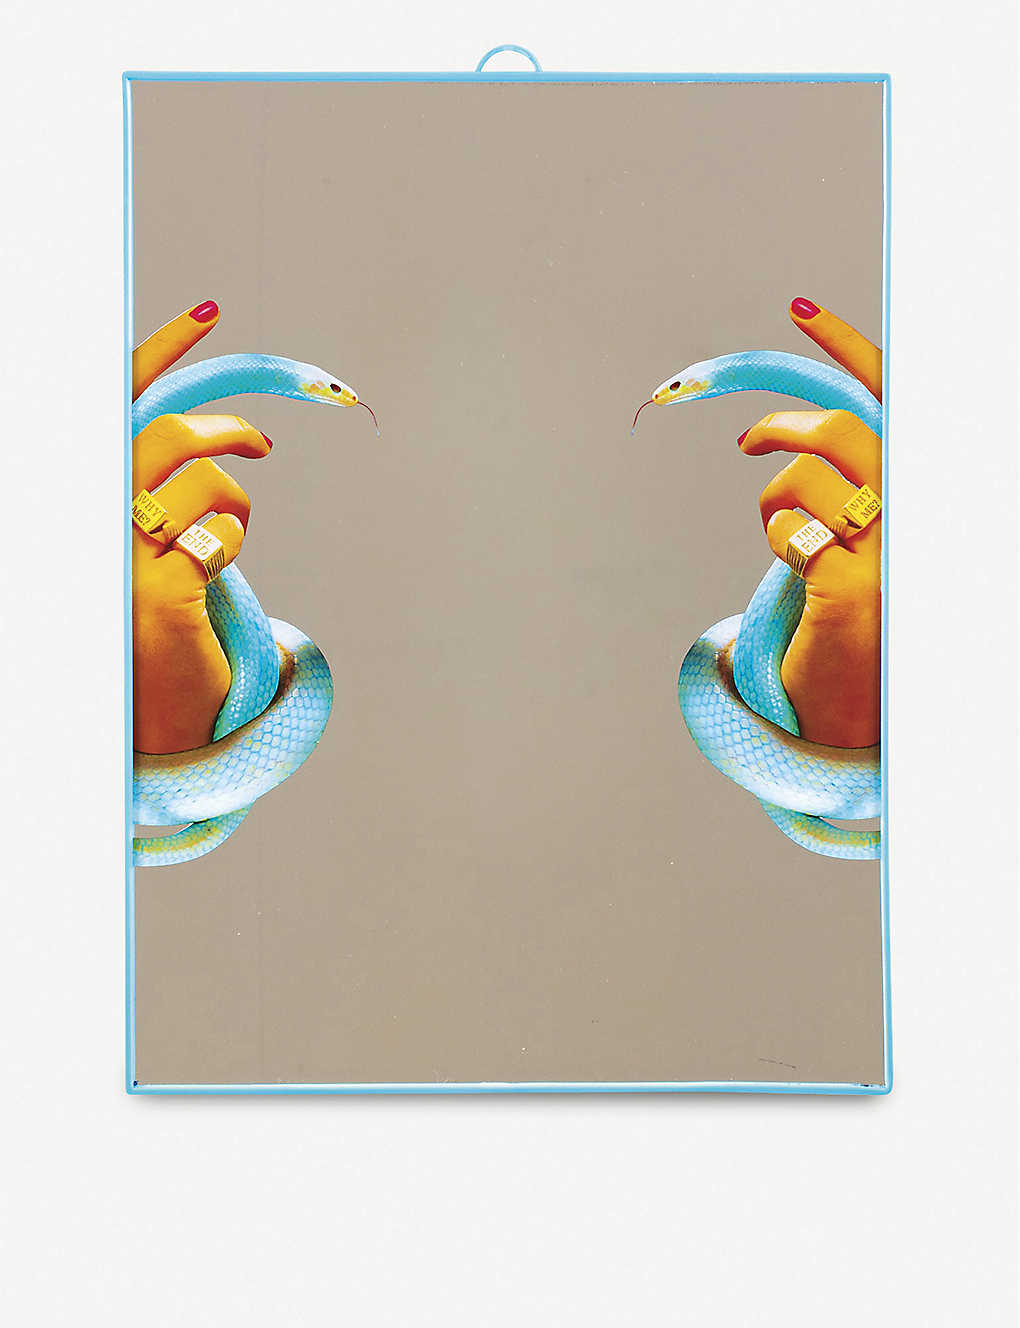 SELETTI: Toiletpaper plastic and glass hands with snakes mirror